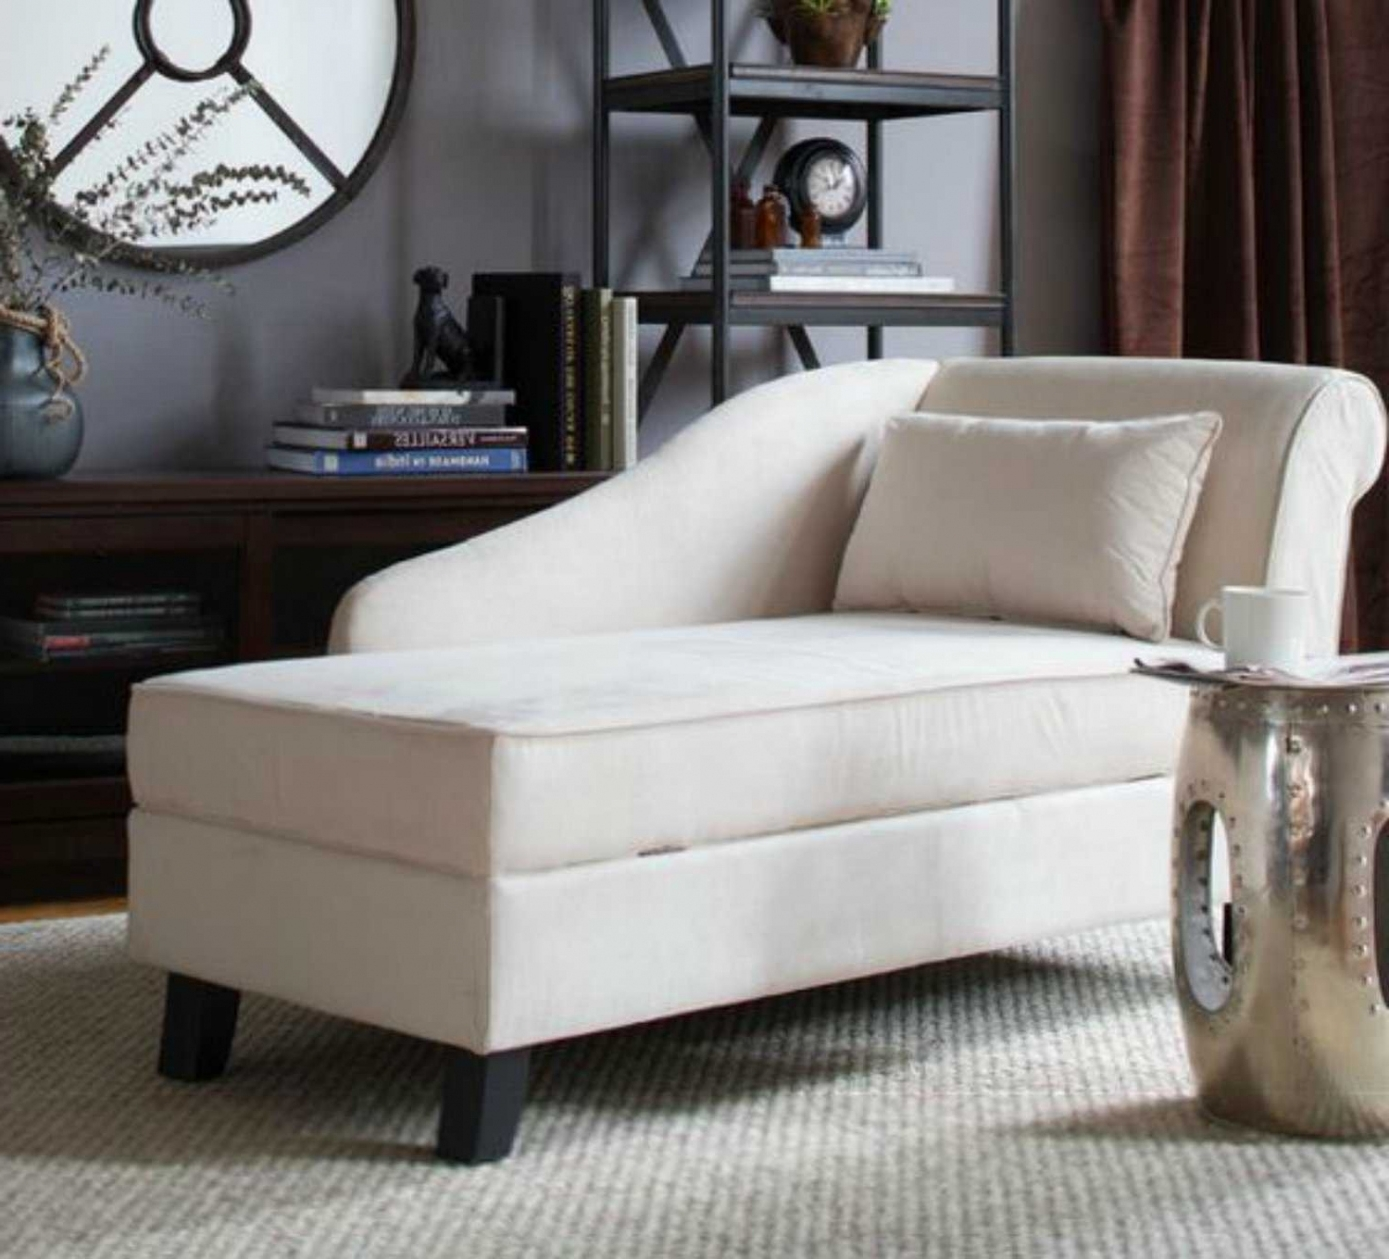 Chaise Chairs For Living Room Intended For Most Recently Released Modern Chaise Lounge Chairs Living Room – Interior Paint Colors (View 2 of 15)